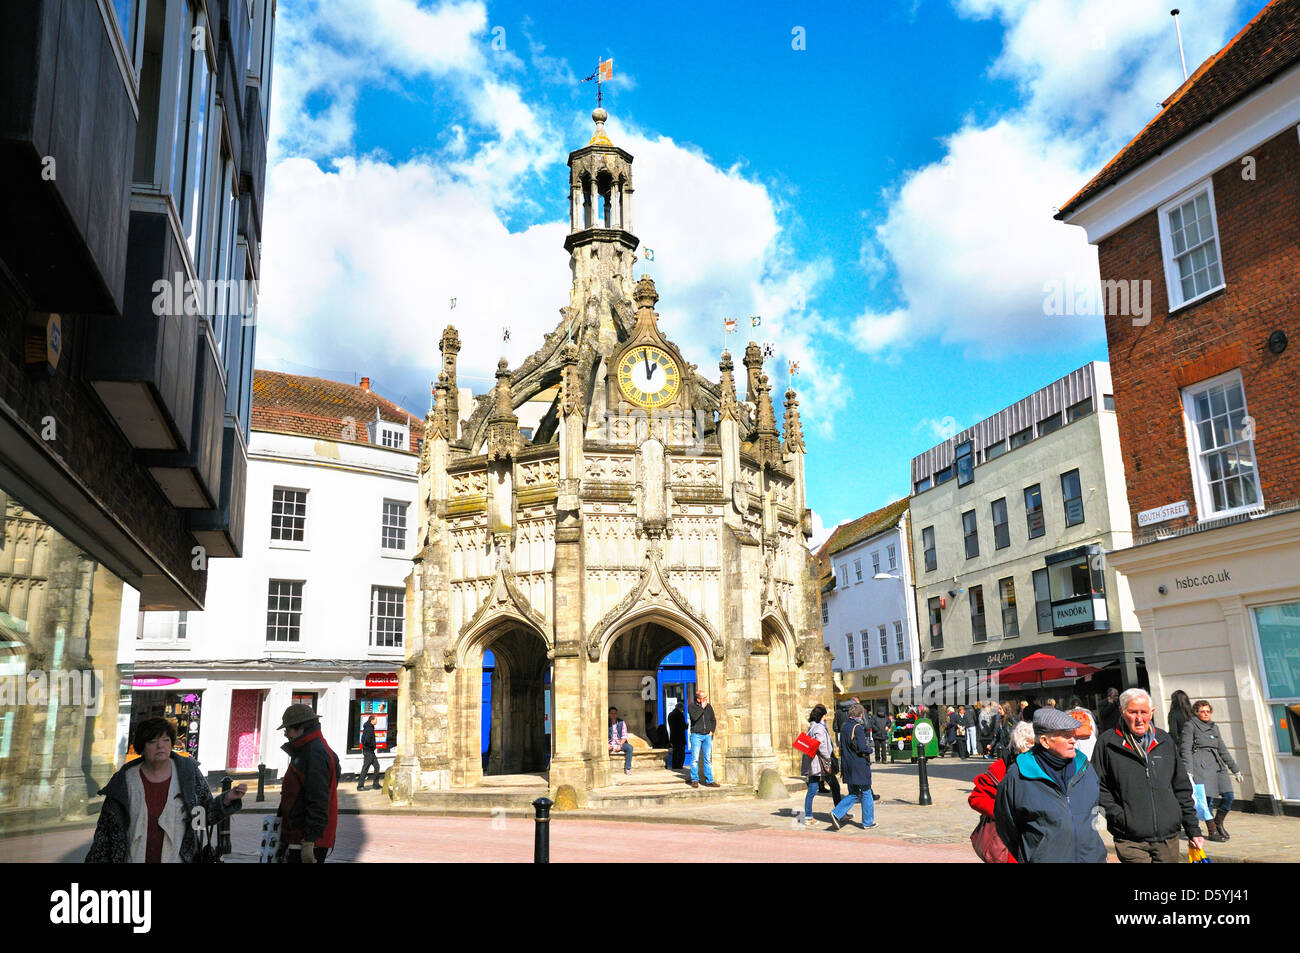 Market Cross in the city centre of Chichester, West Sussex, UK - Stock Image